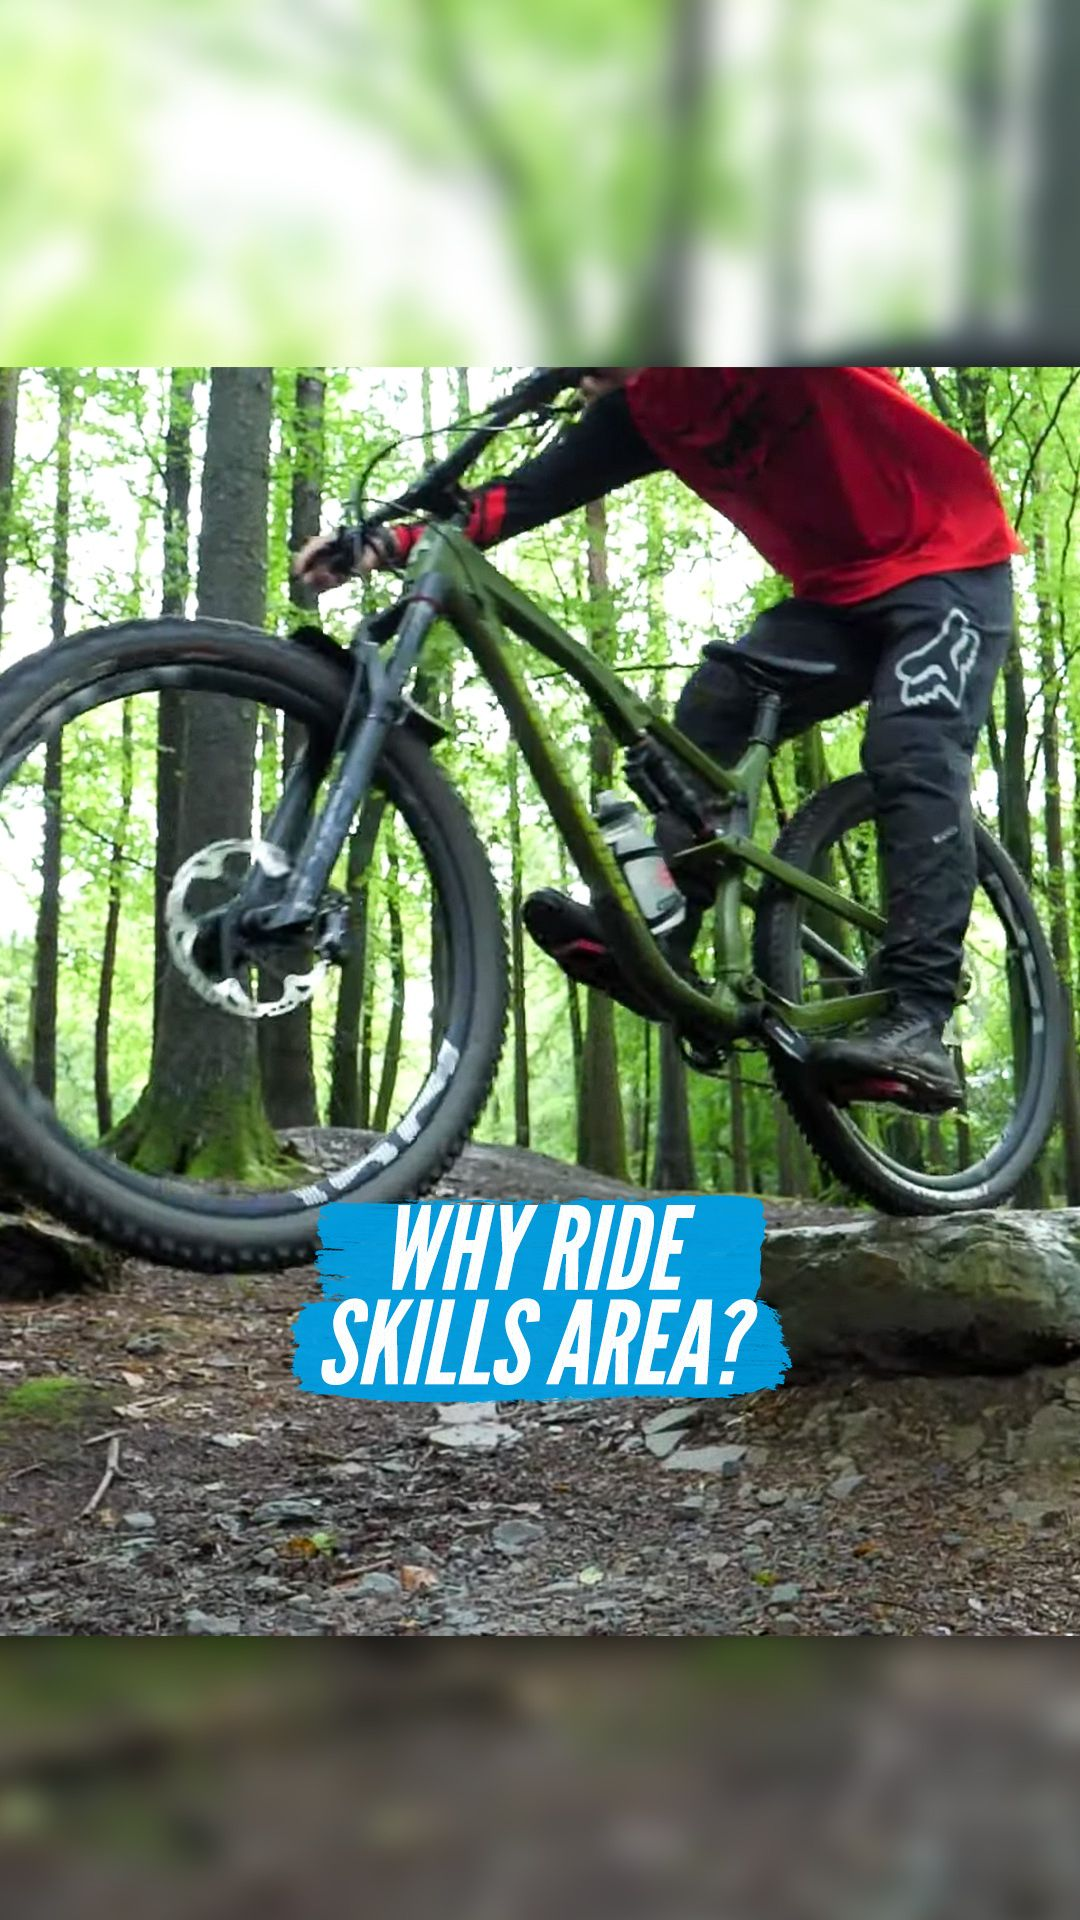 6 Reasons To Go Riding At A Mountain Bike Skills Park In 2020 Mountain Biking Riding Go Ride